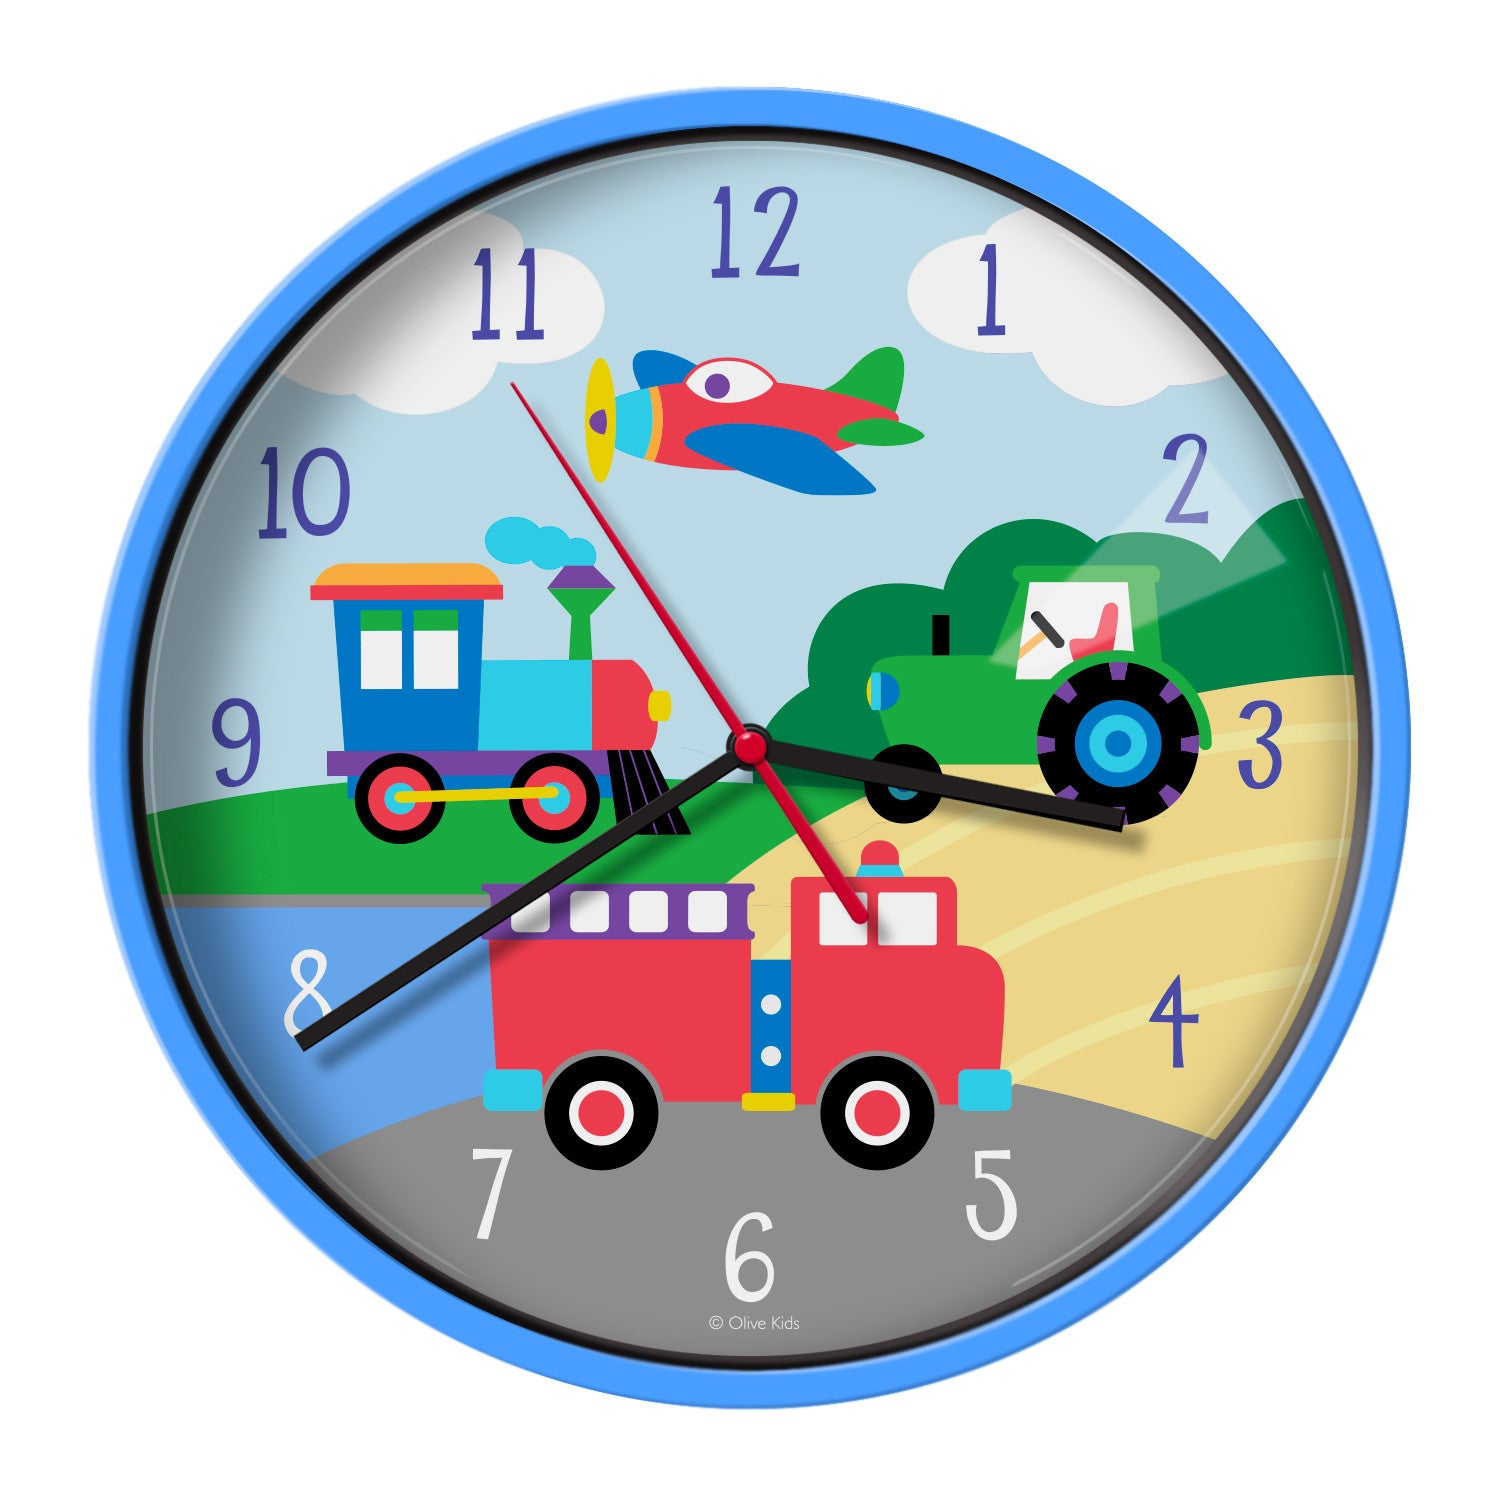 Olive Kids Trains Planes Trucks Wall Clock 623410 Nurzery